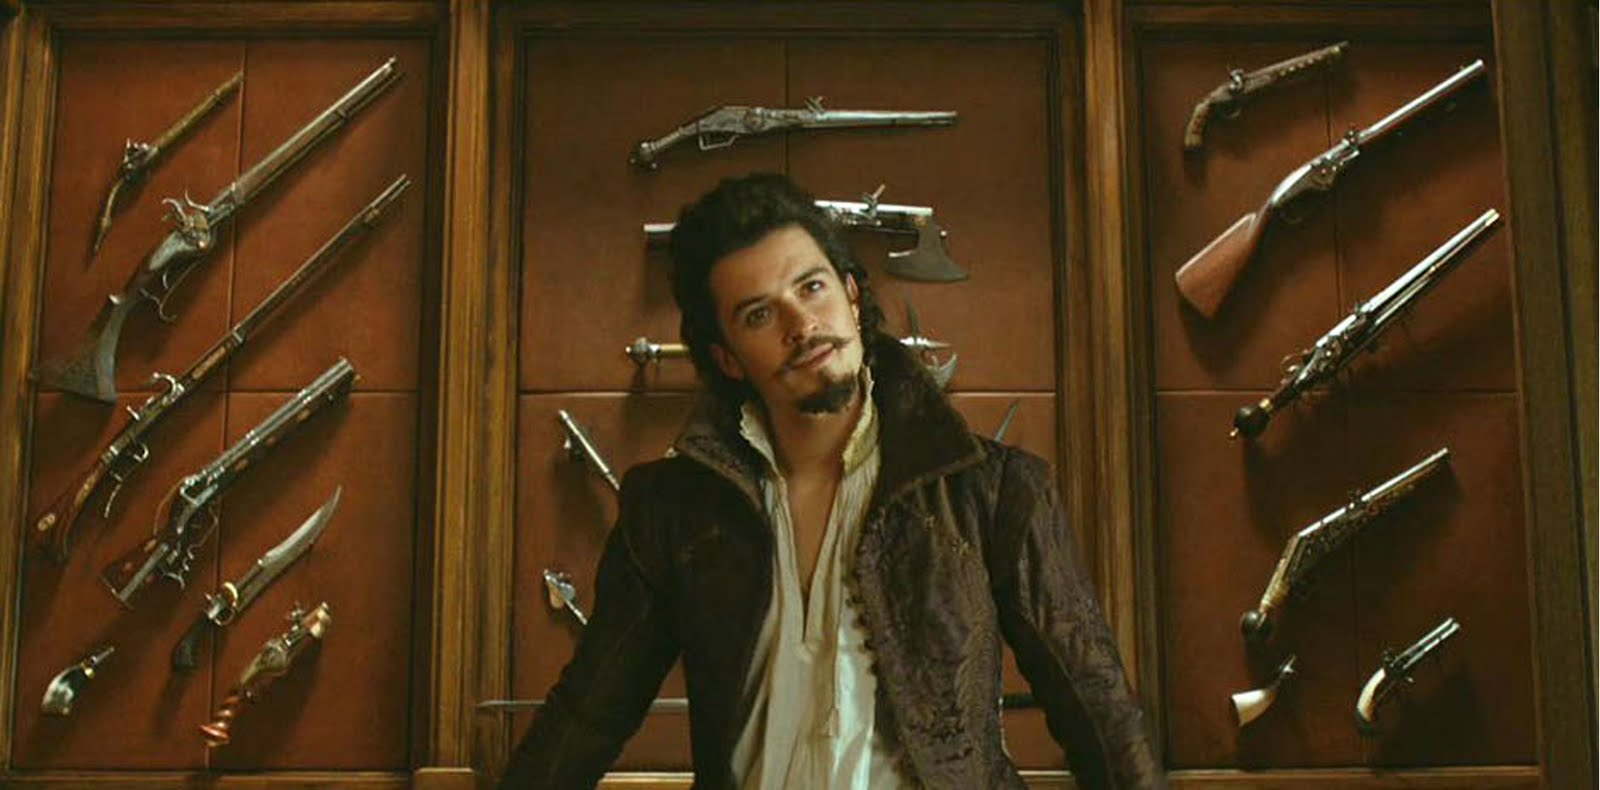 http://3.bp.blogspot.com/-b-2D83pZhLU/TnSssQaP6xI/AAAAAAAACME/Z2i1ANTsY1Y/s1600/the-three-musketeers-2011-Orlando-Bloom-10.jpg